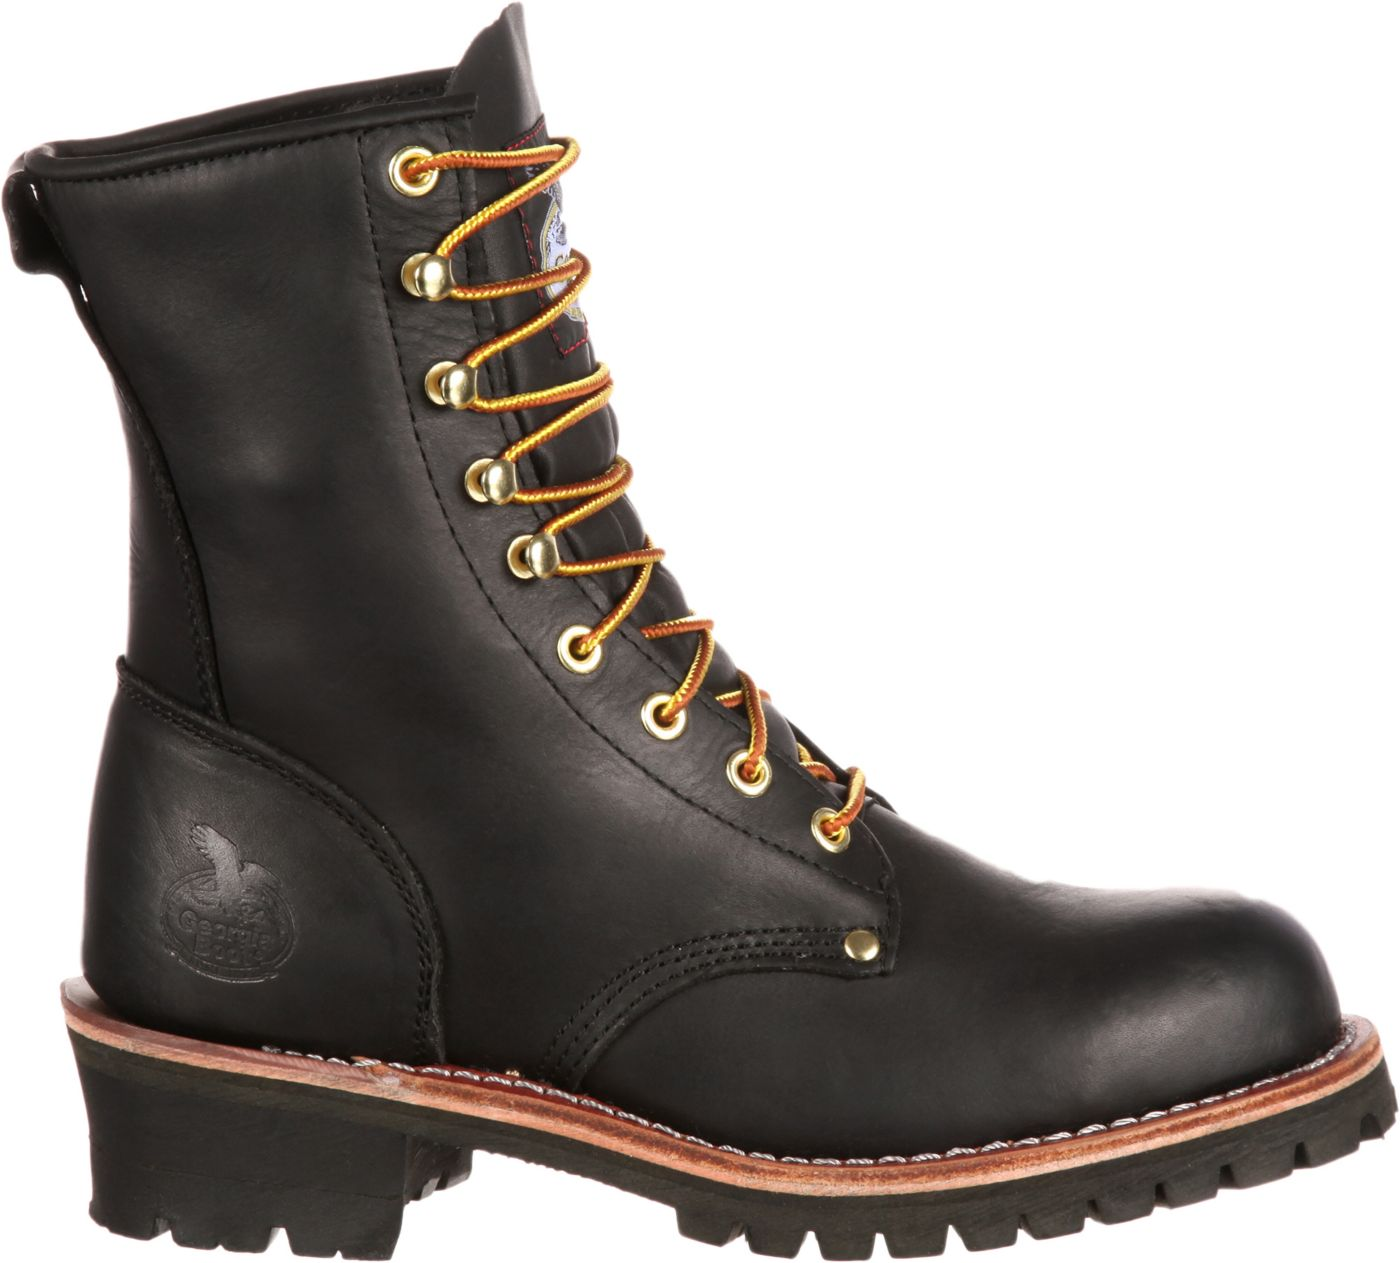 Georgia Boot Men's Logger Steel Toe Work Boots